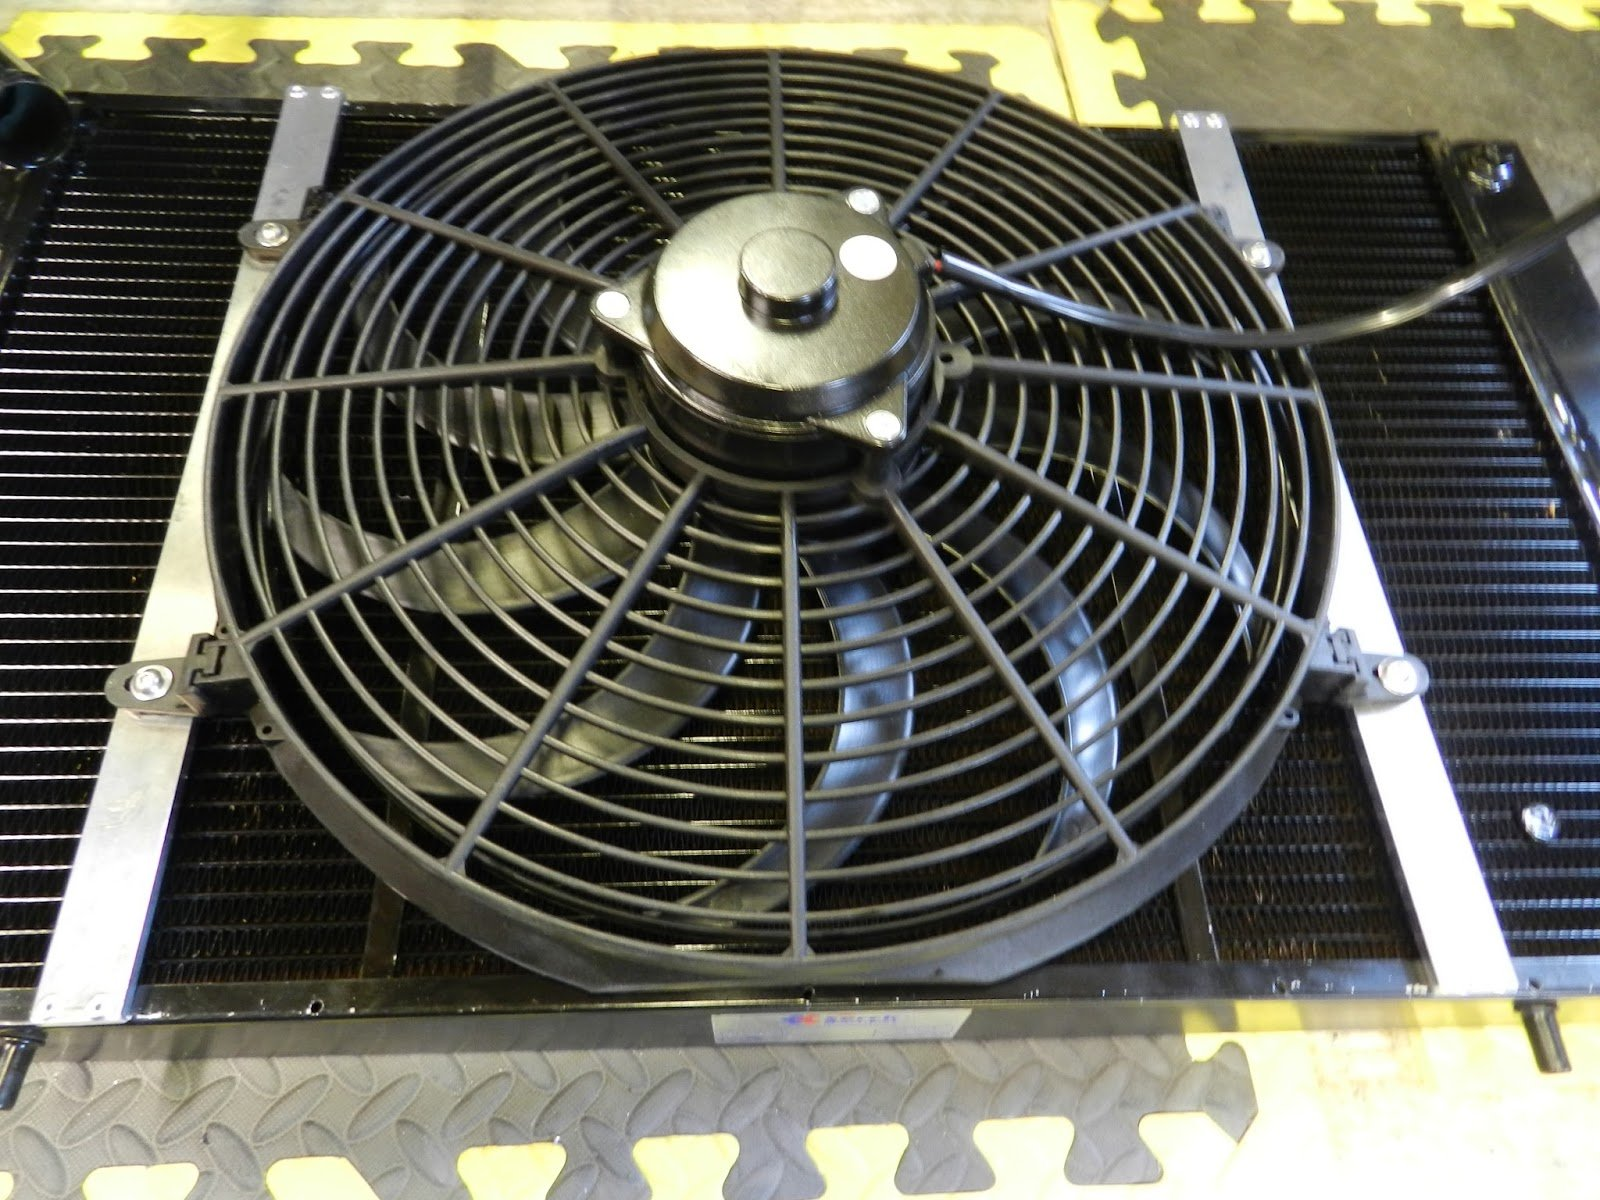 engine fan replacement requires no special tools